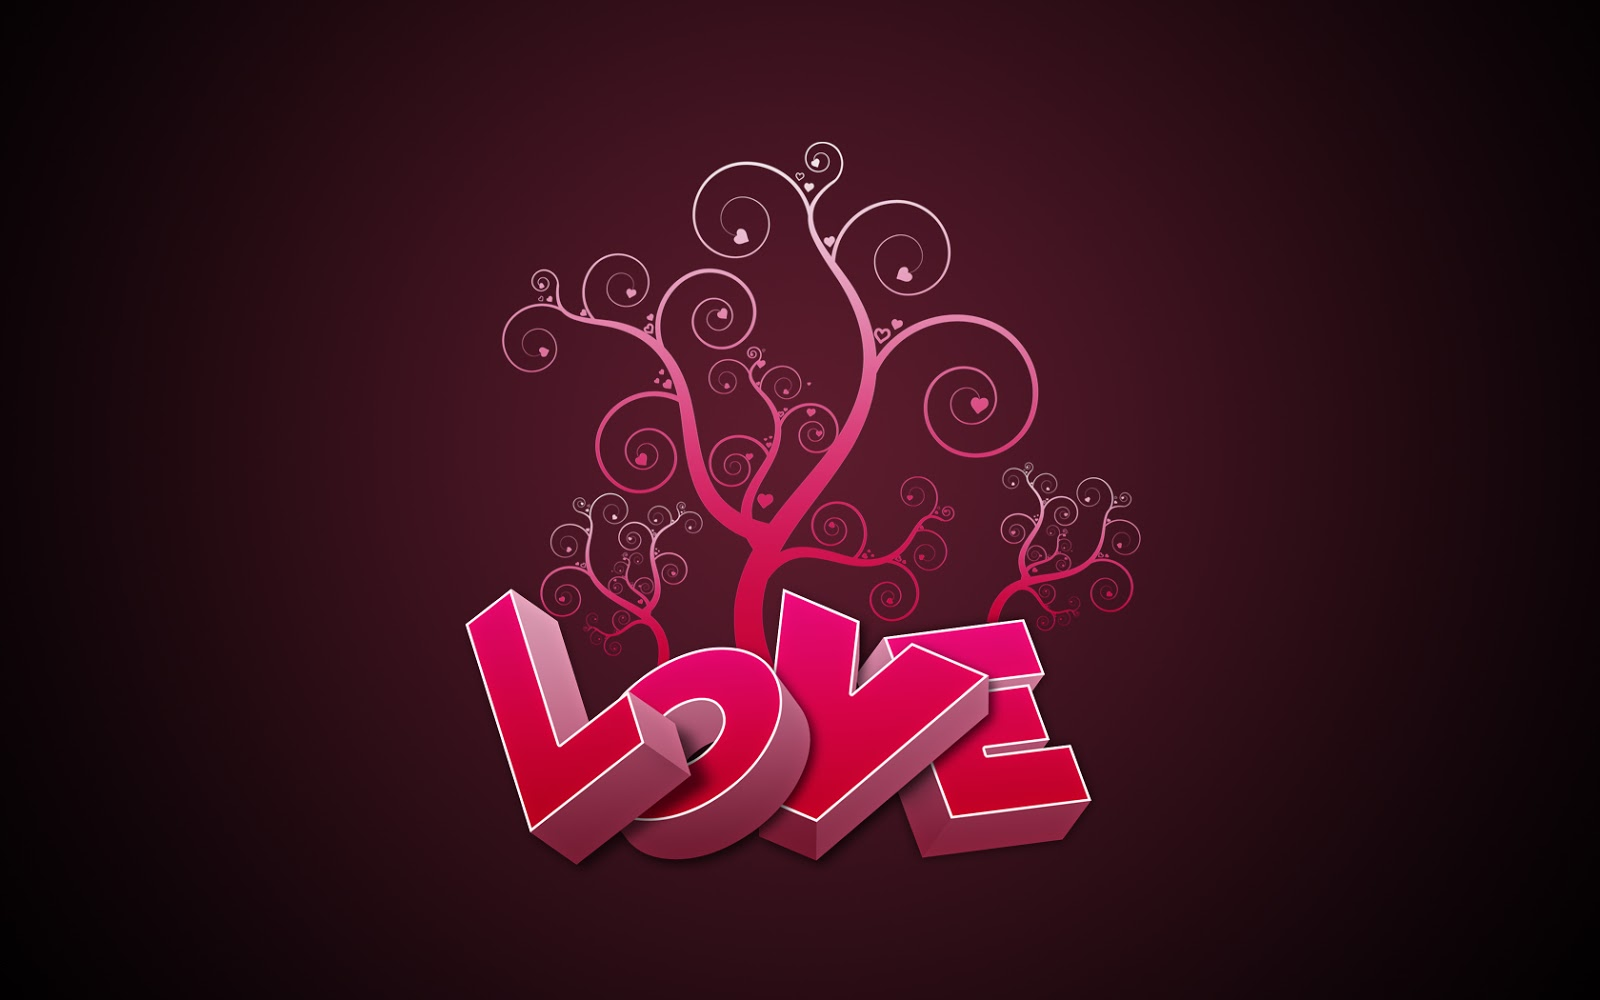 Love Wallpaper Hd Rar : HD Wallpapers: LOVE HD WALLPAPERS